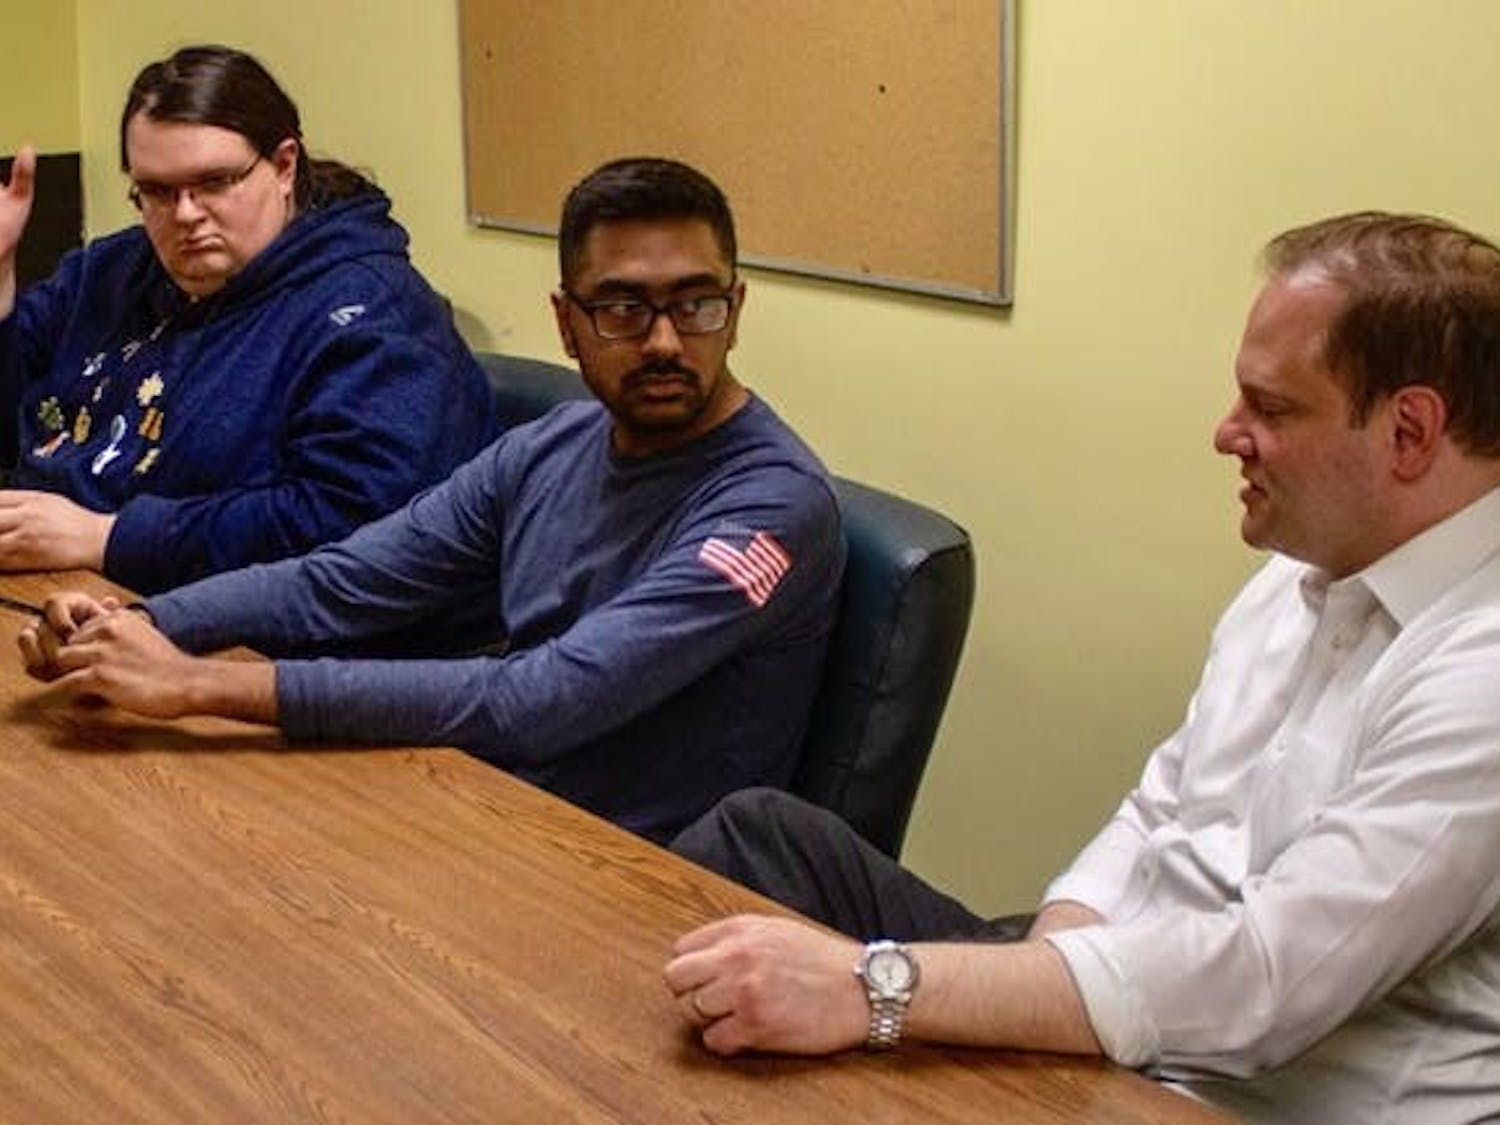 (Left to right) Connor Walters, Arsh Issany and Joshua Lippes discuss UB's decision to dissolve Sub-Board I in The Spectrum's office in May.